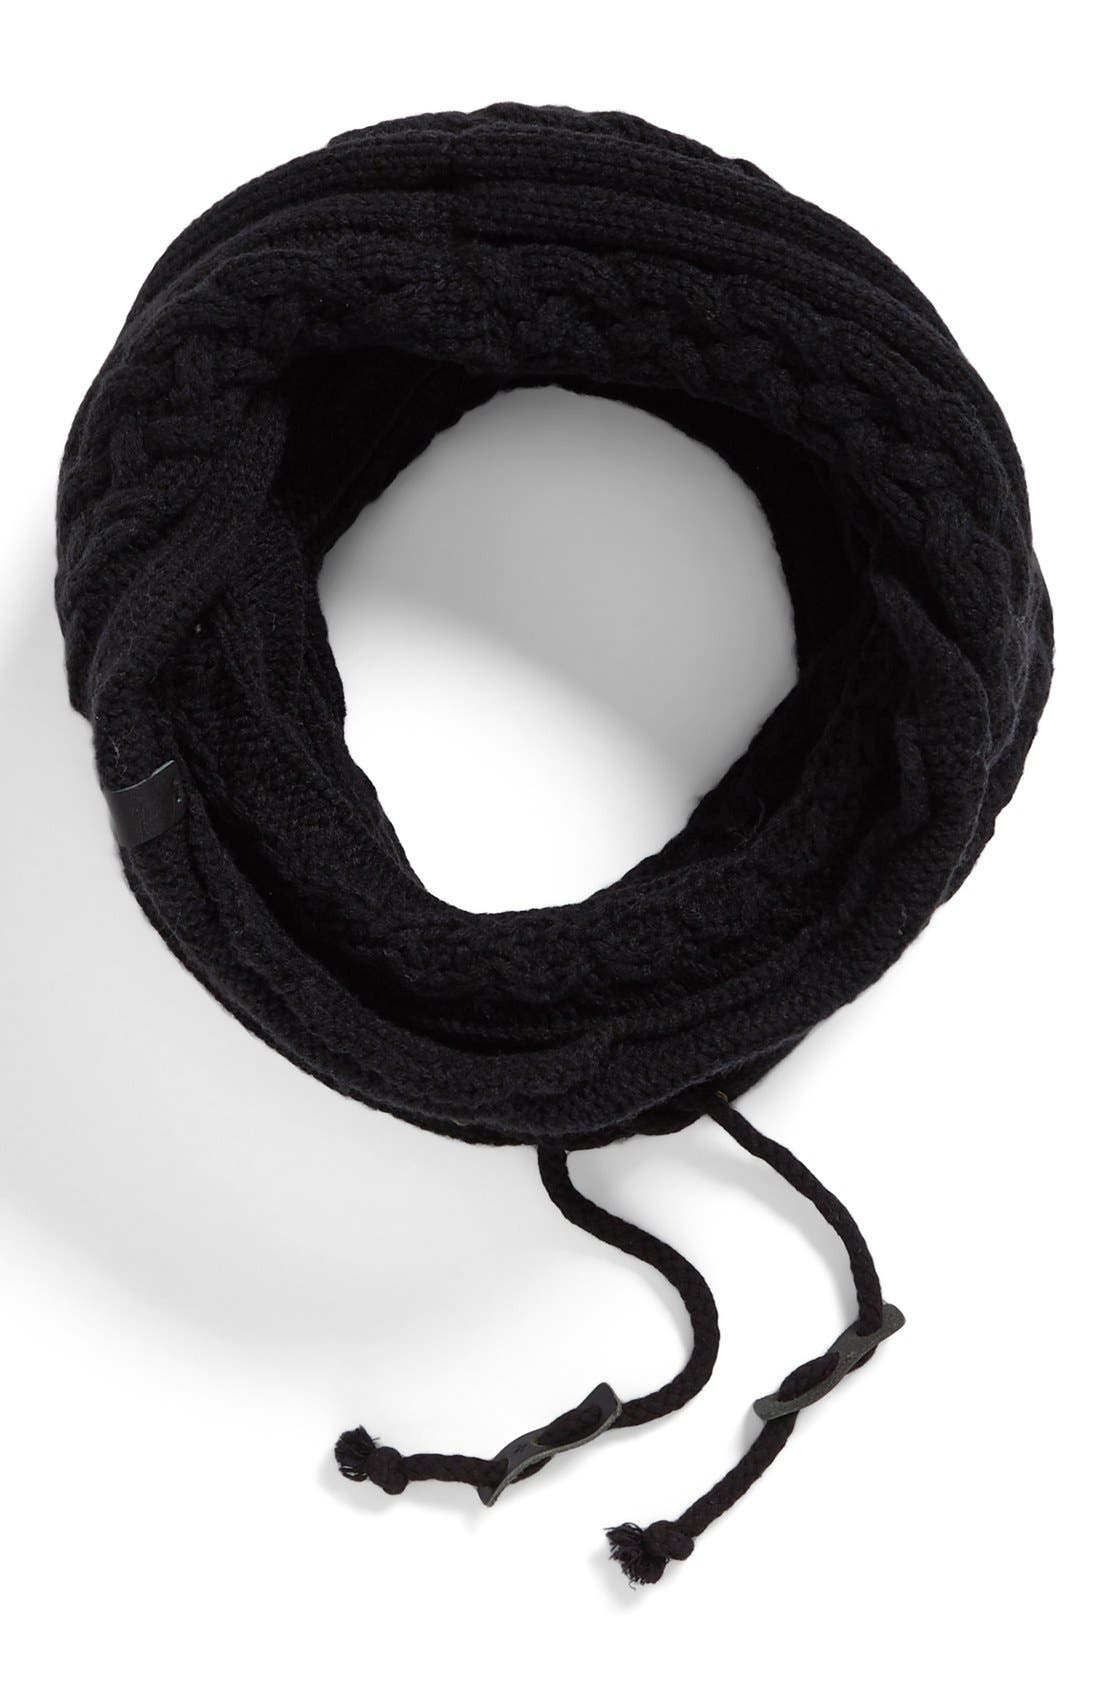 Alternate Image 1 Selected - Bickley + Mitchell Cable Knit Drawstring Snood